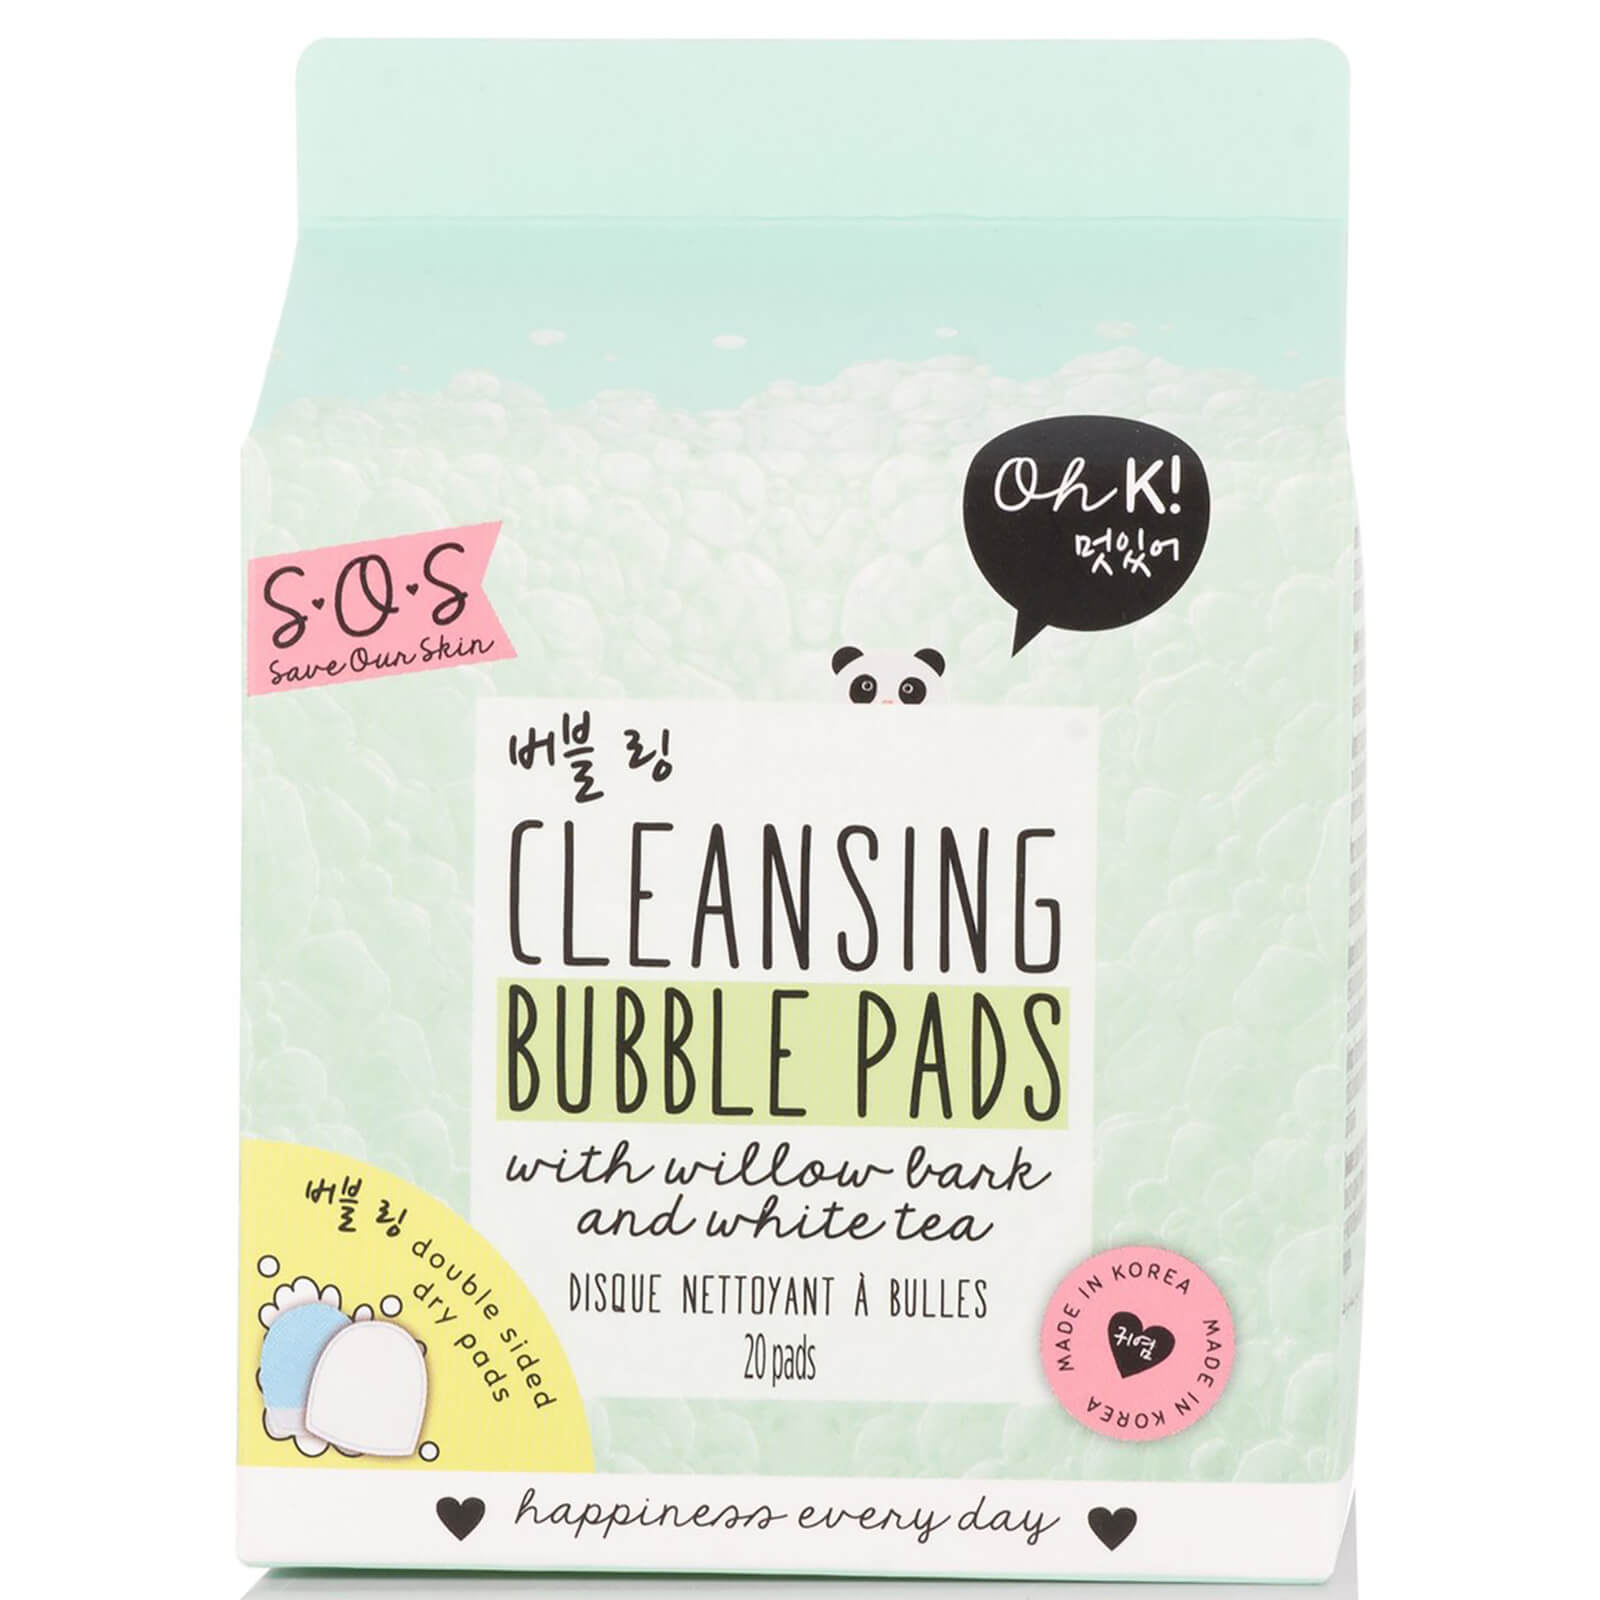 Oh K! SOS Cleansing Bubble Pads, 20 Pads